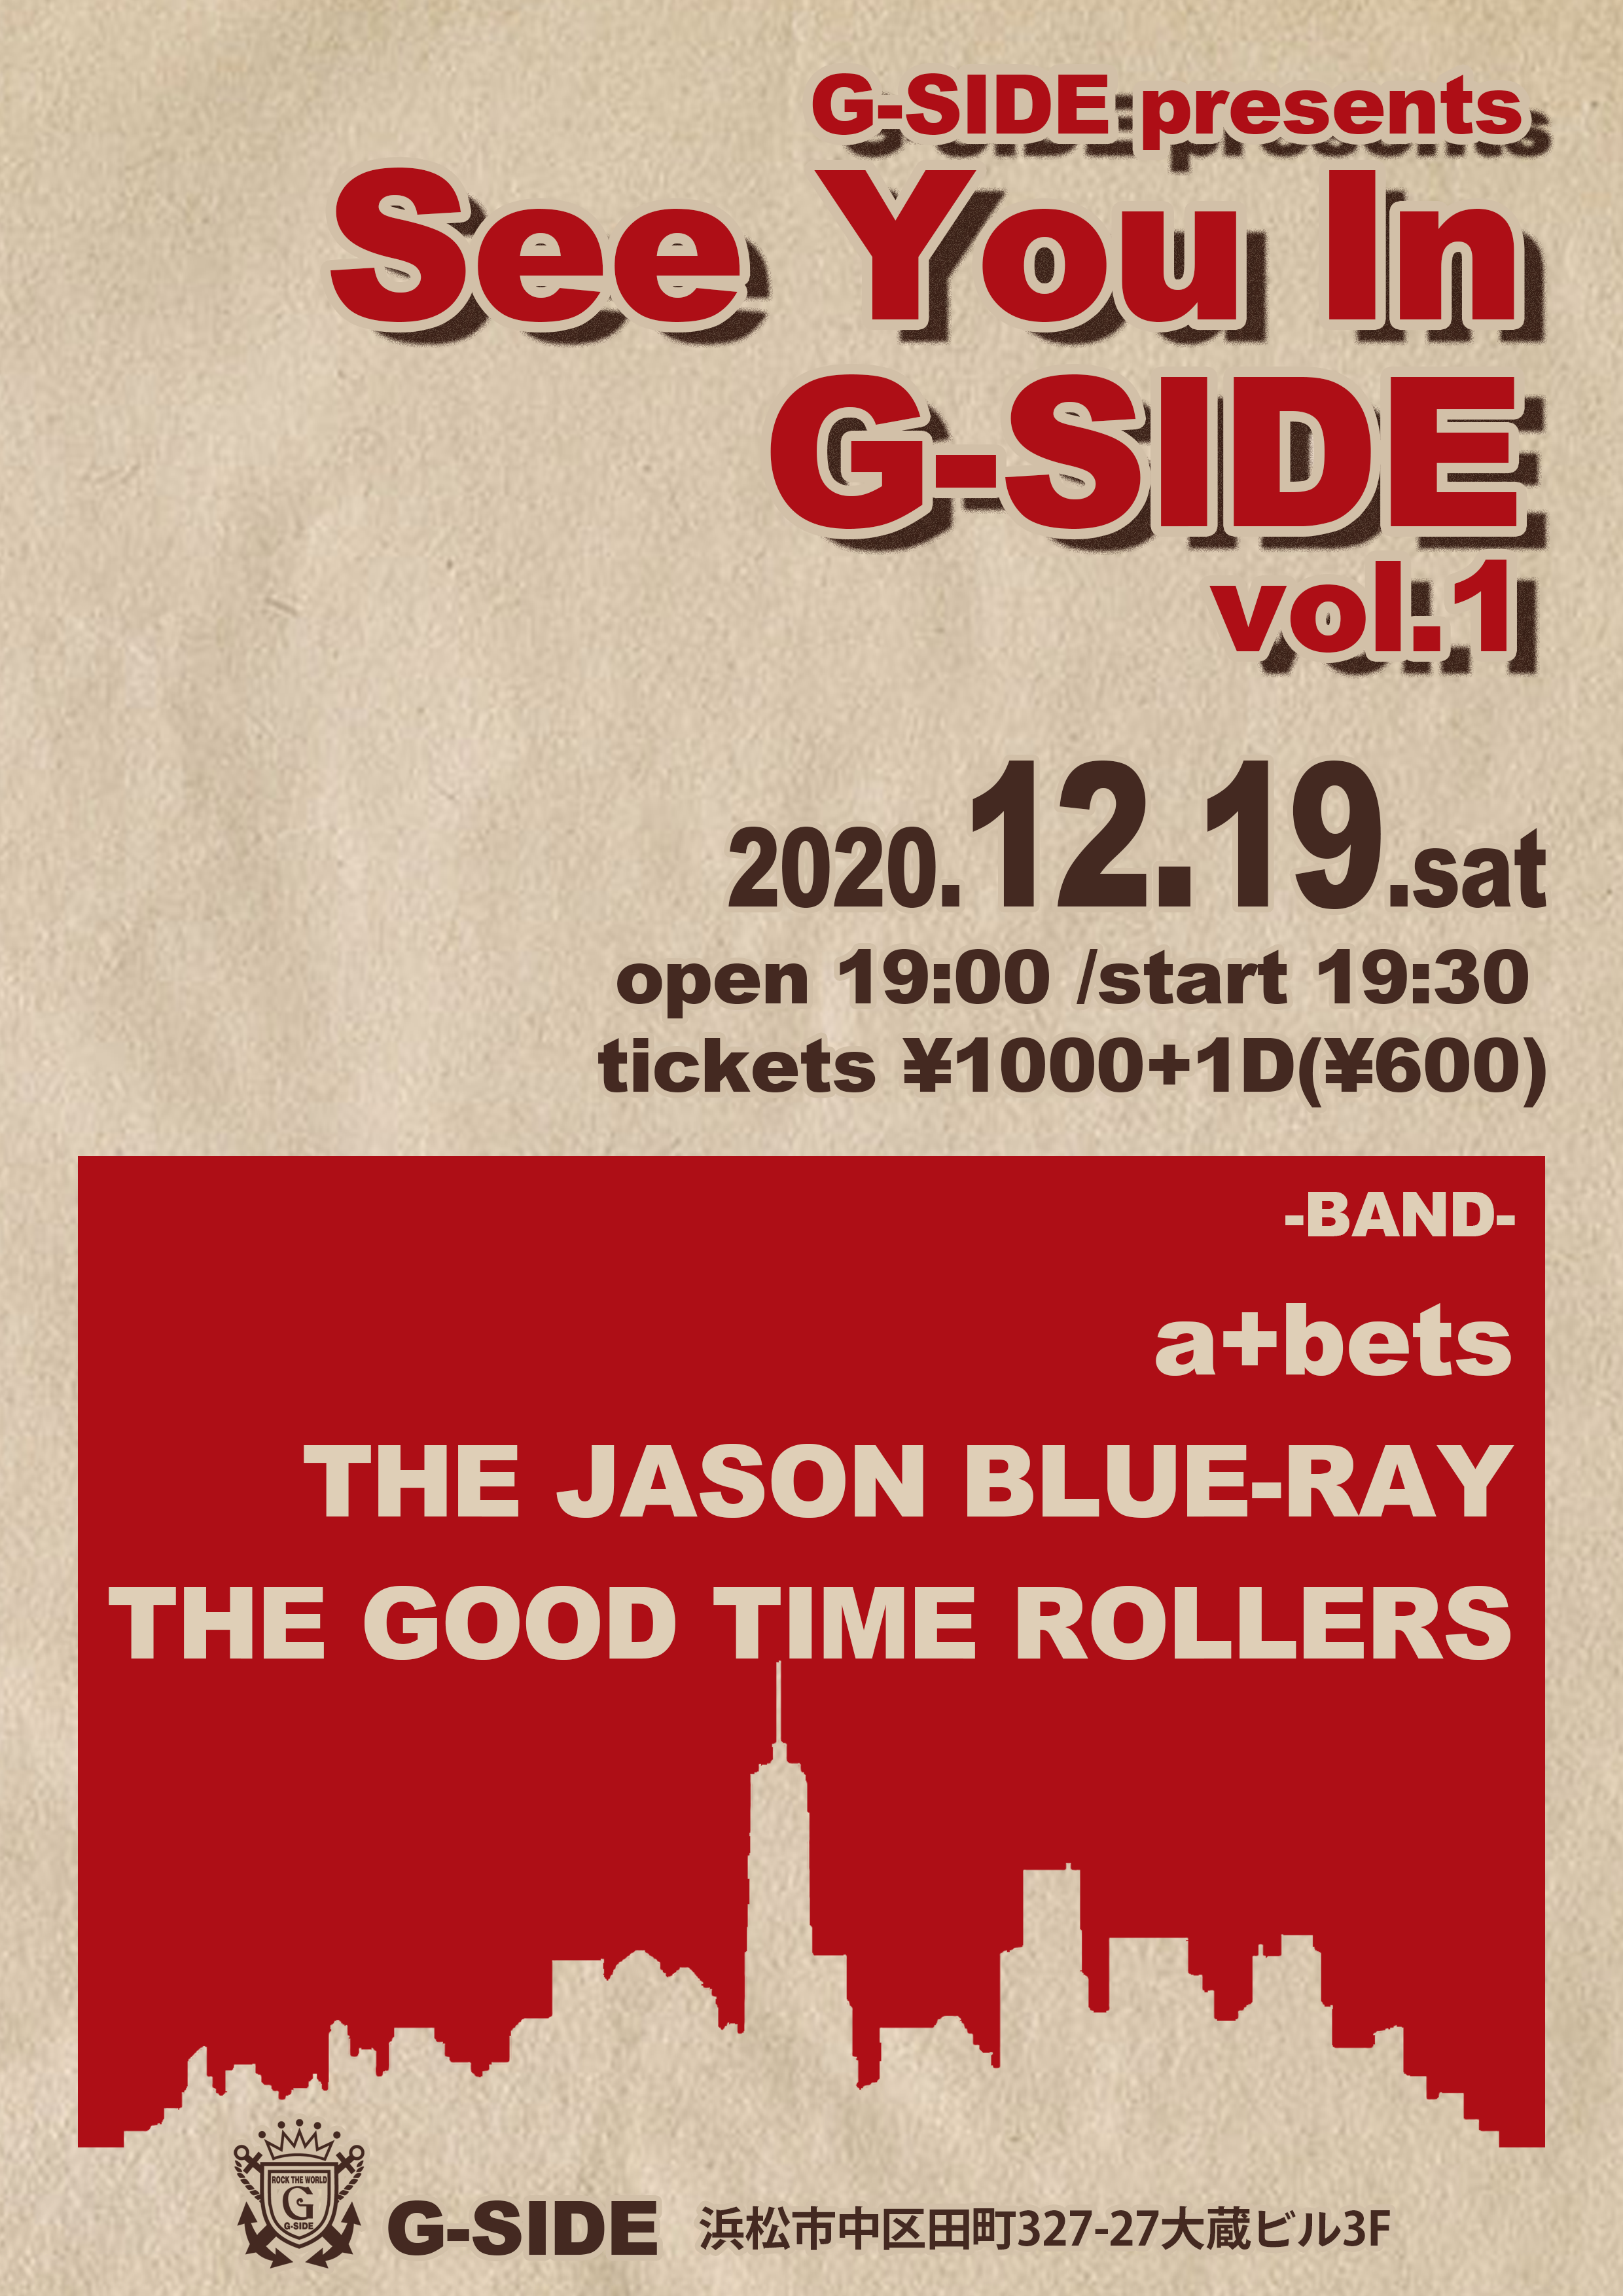 G-SIDE presents See You In G-SIDE vol.1